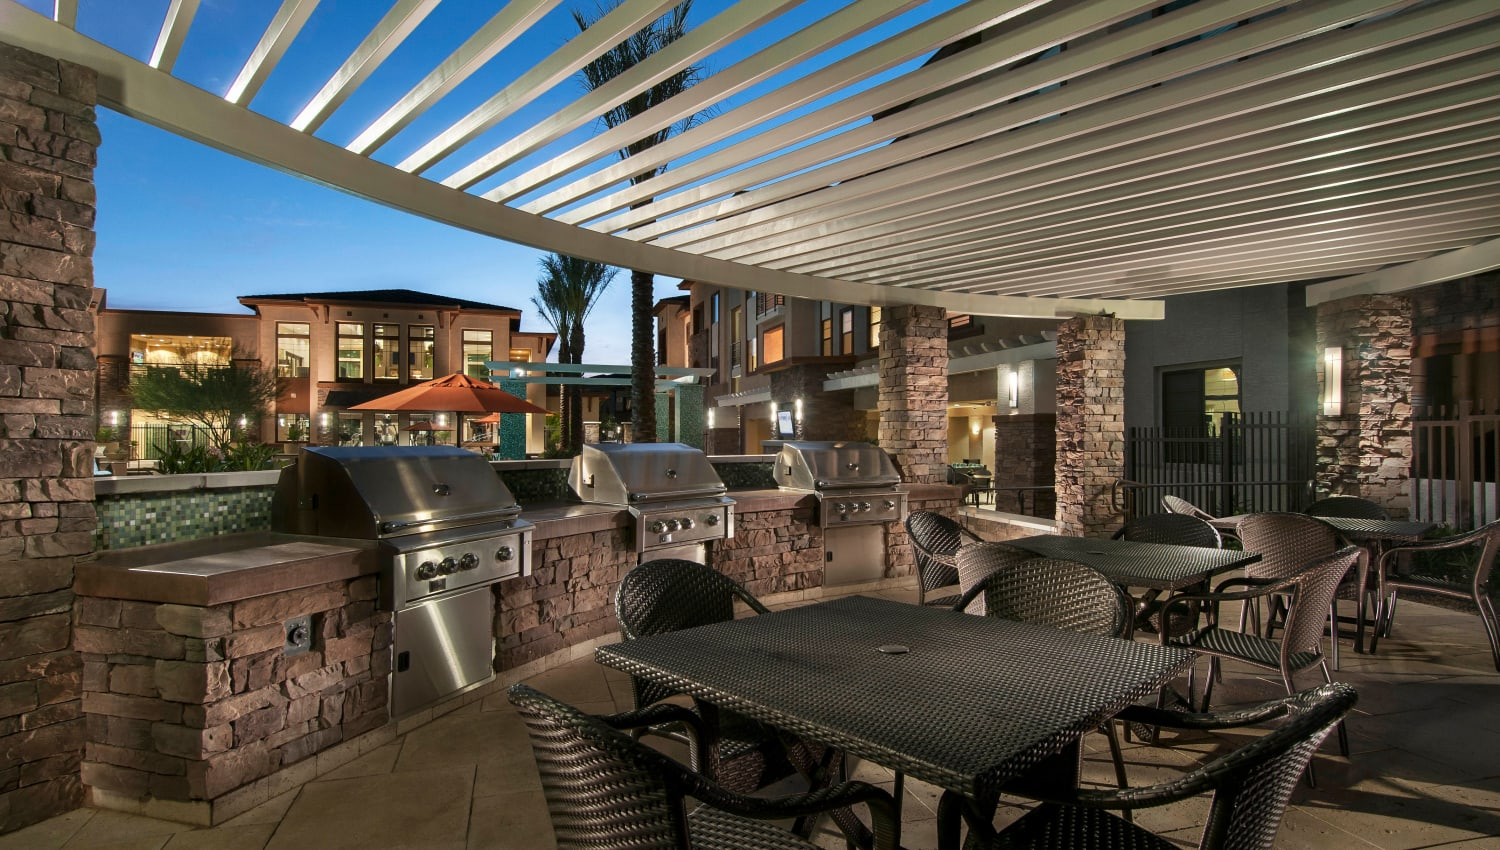 Pergola over the barbecue area at twilight at Redstone at SanTan Village in Gilbert, Arizona